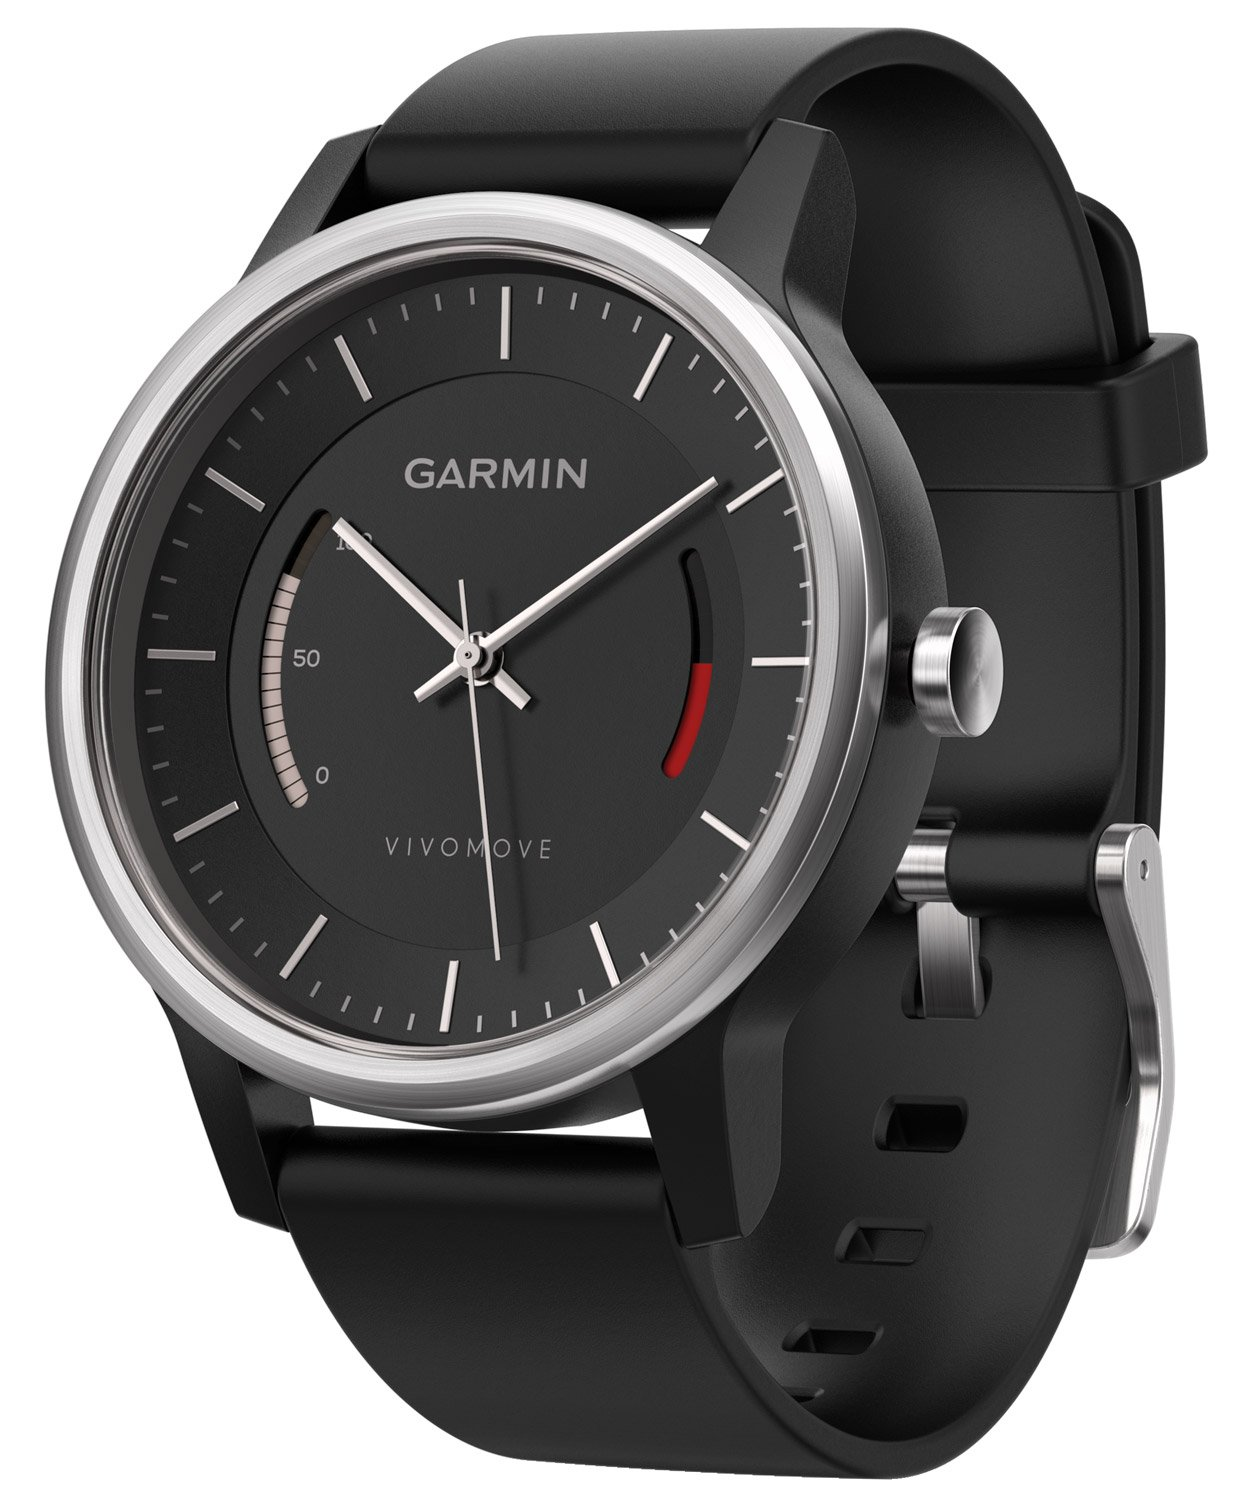 garmin wearables g nstig kaufen uhrcenter uhren shop. Black Bedroom Furniture Sets. Home Design Ideas